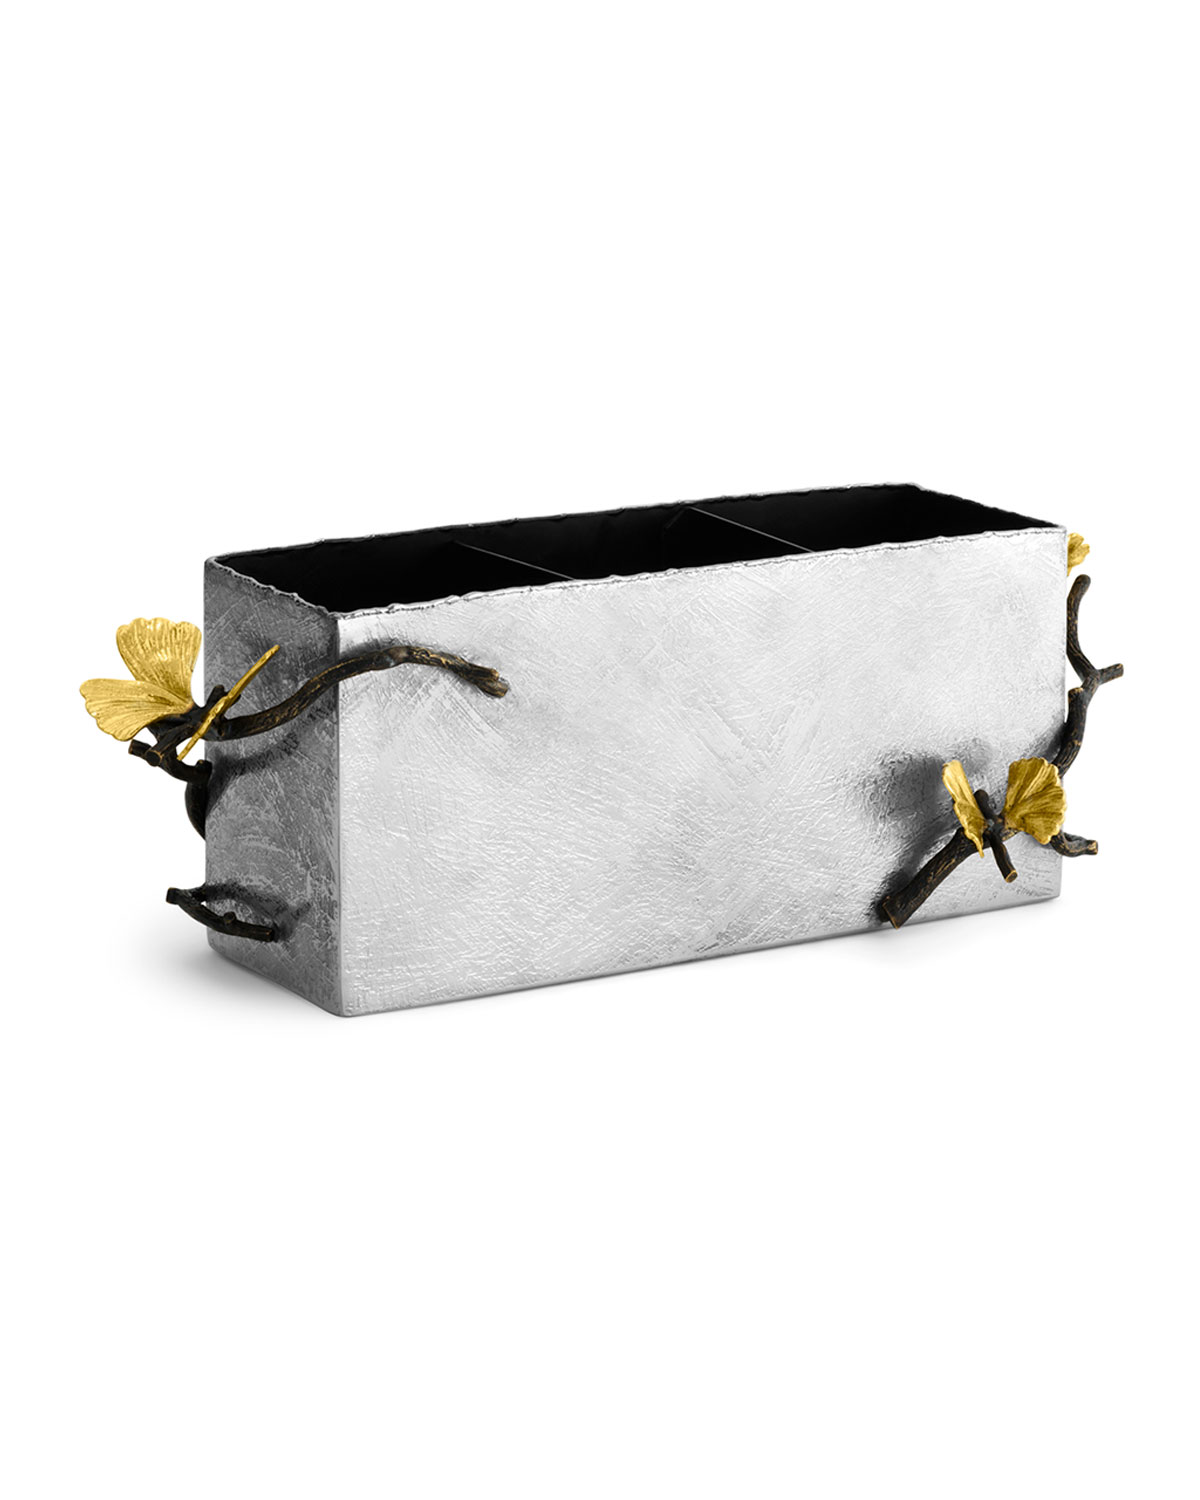 Michael Aram BUTTERFLY GINKGO CUTLERY CADDY